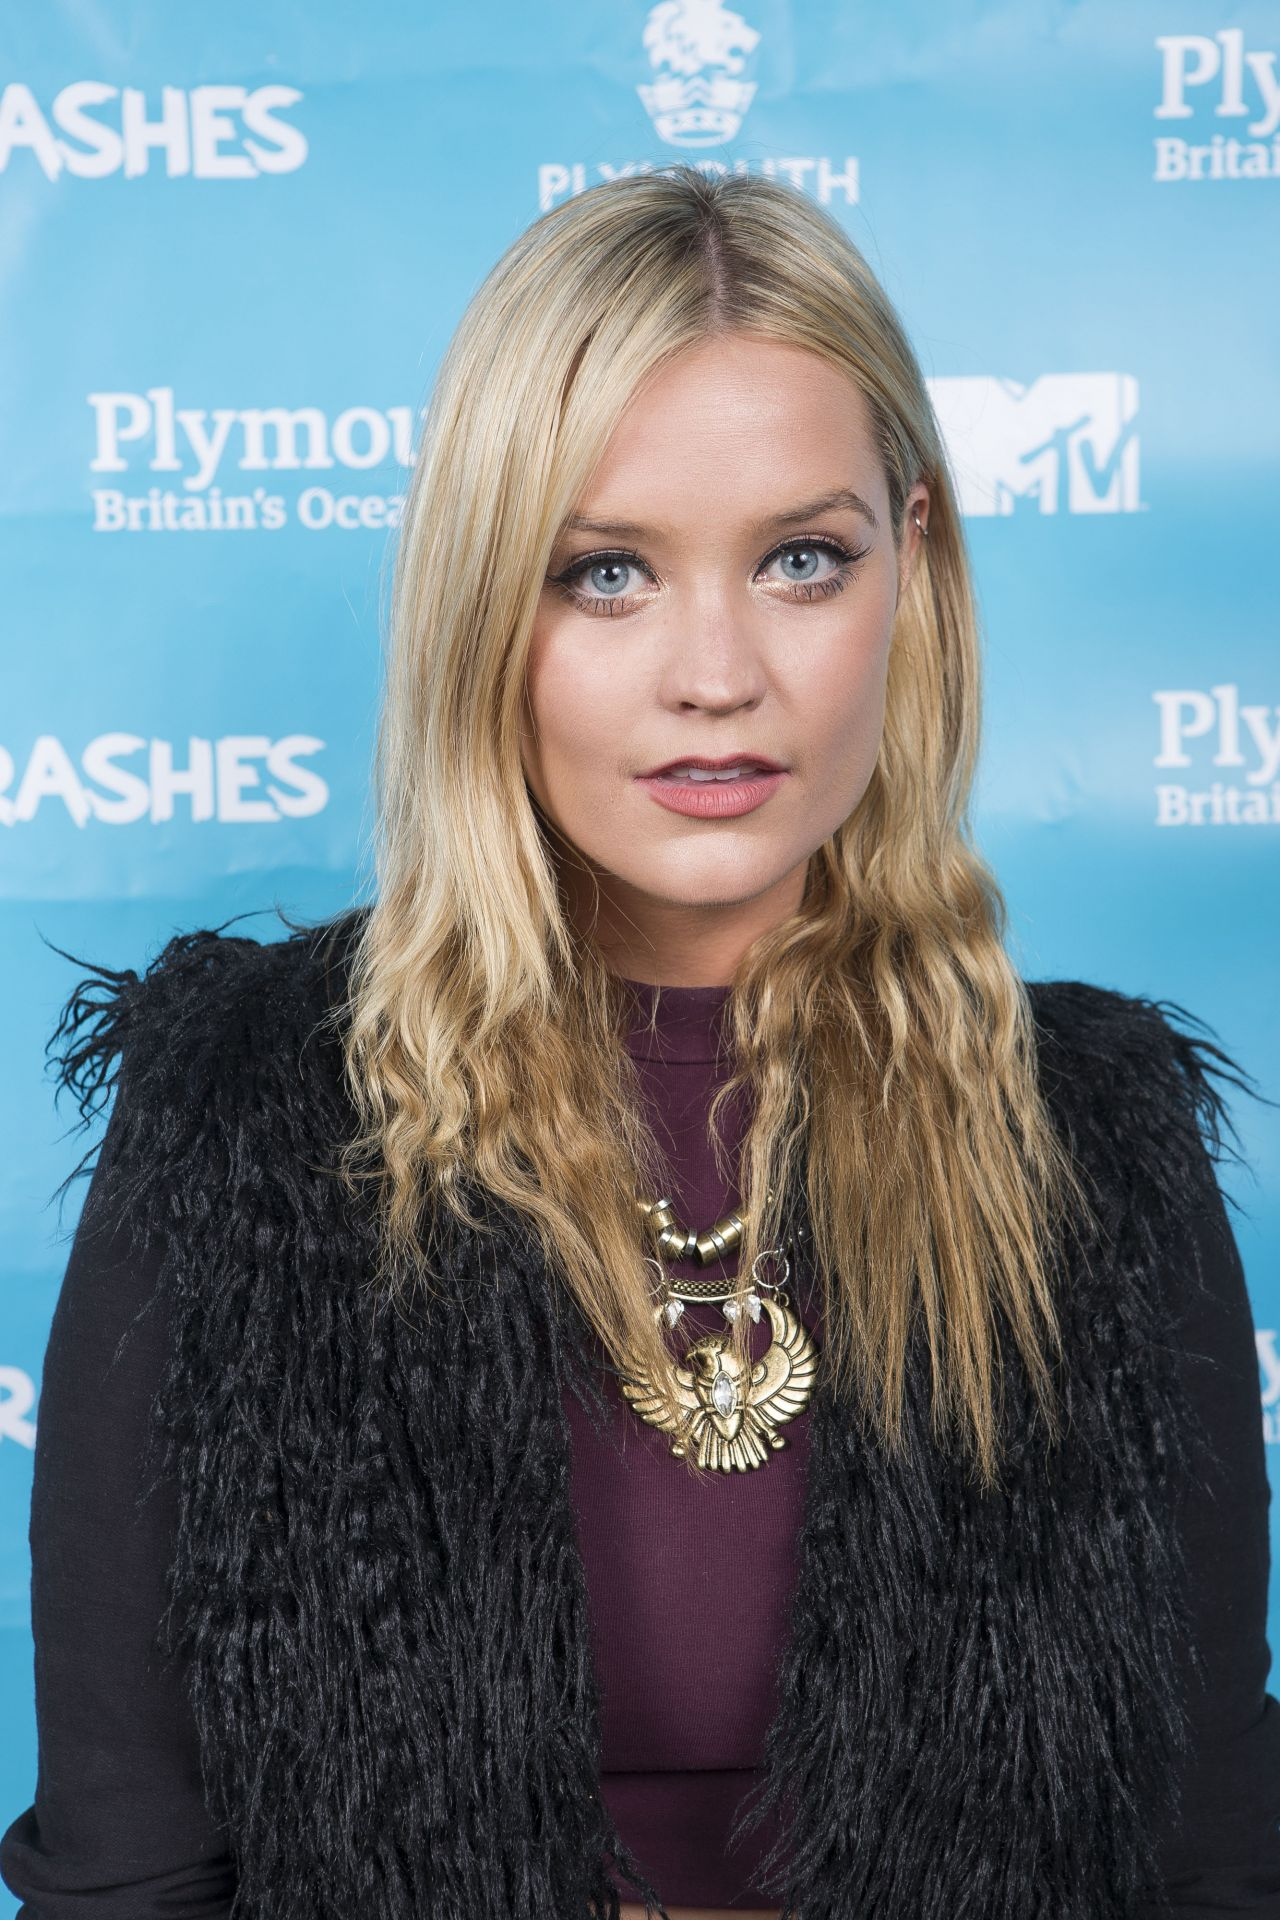 Laura Whitmore - MTV Crashes Plymouth (England) - July 2014